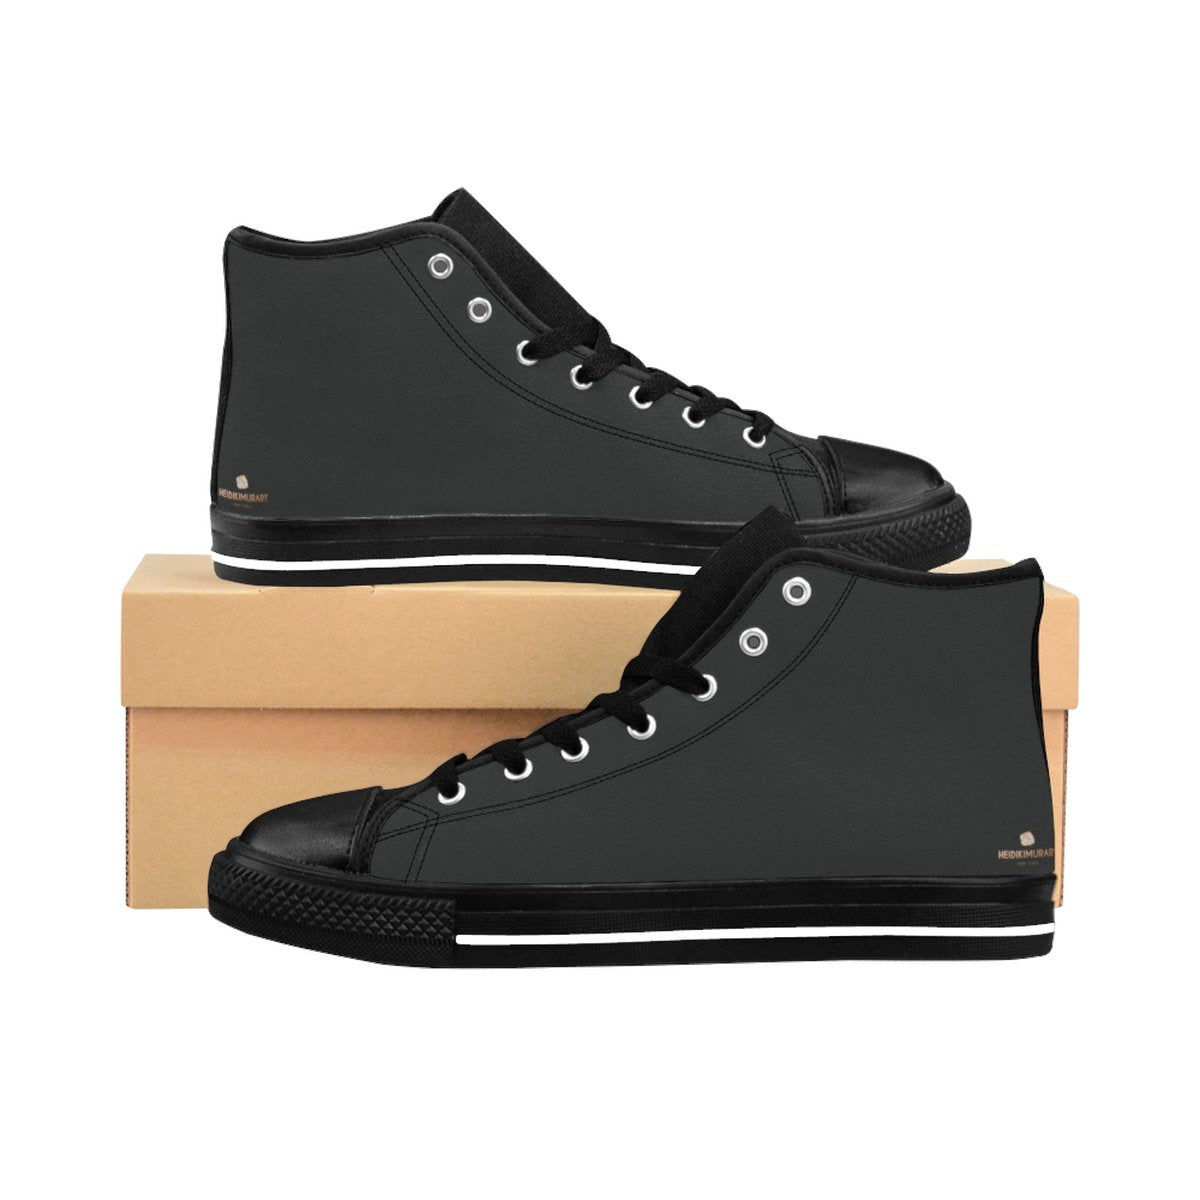 Dark Gray Solid Color Premium Quality Men's High-Top Sneakers Running Shoes-Men's High Top Sneakers-Black-US 9-Heidi Kimura Art LLC